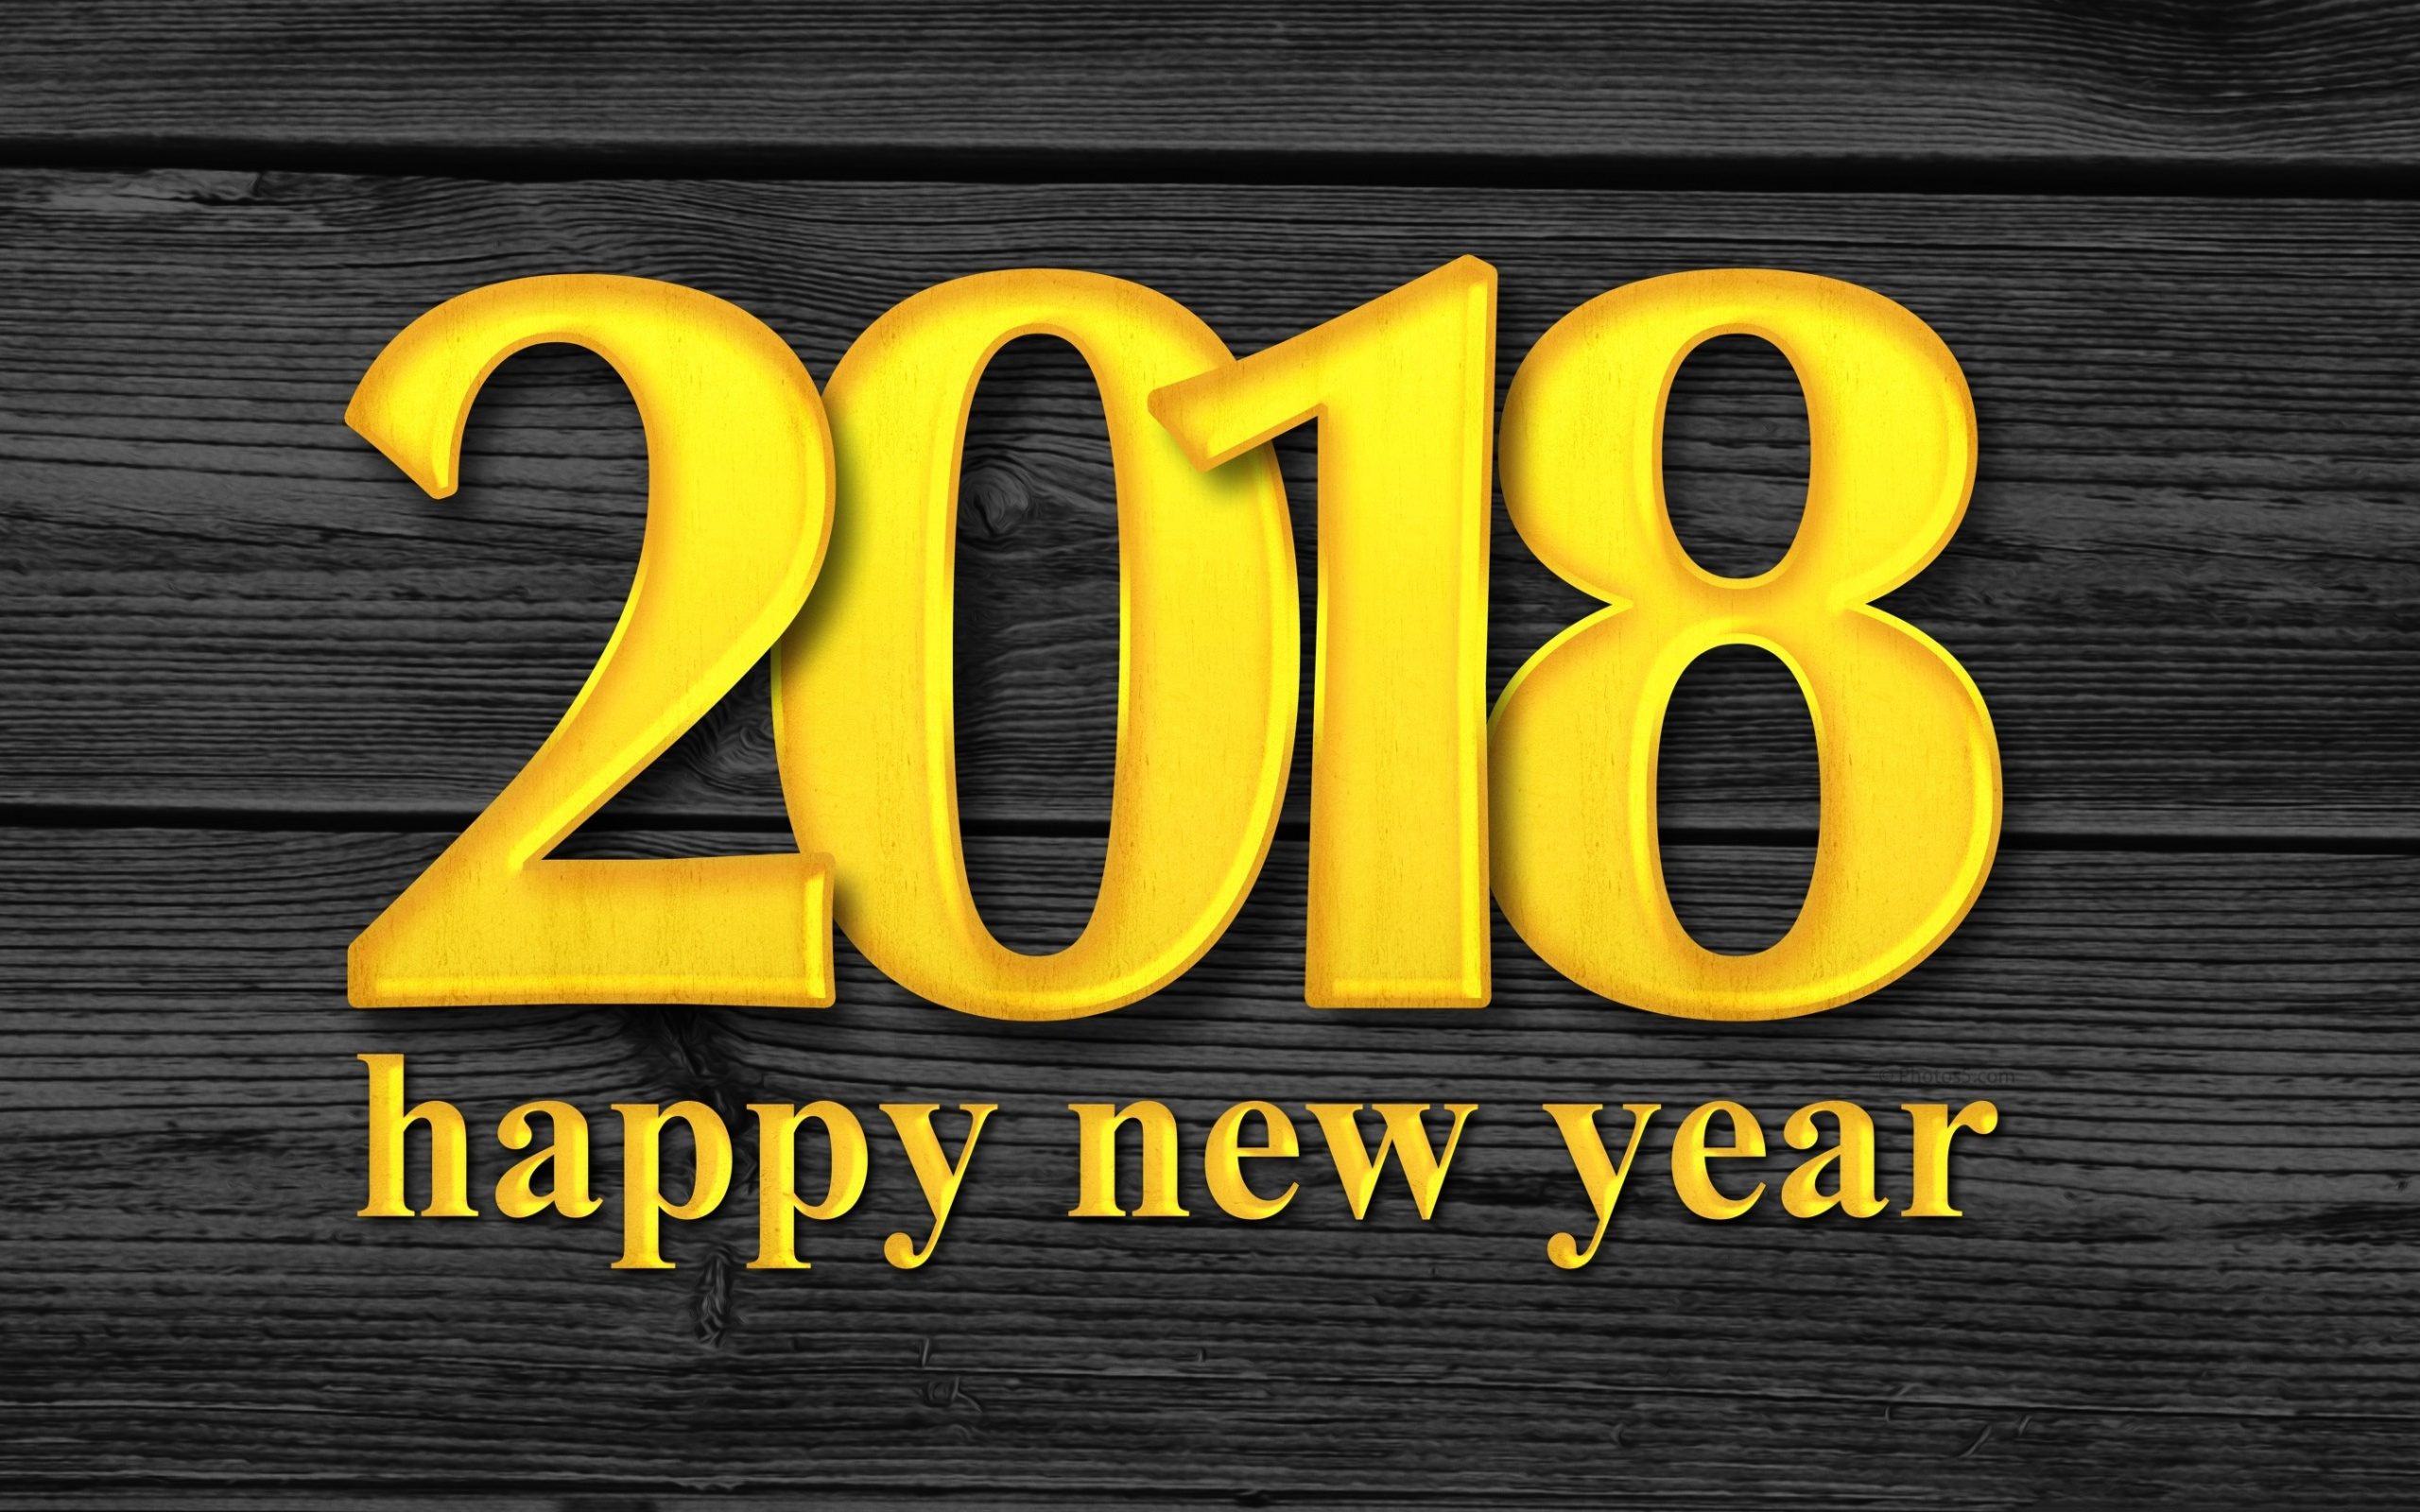 new year 2018 hd wallpaper background image id877571